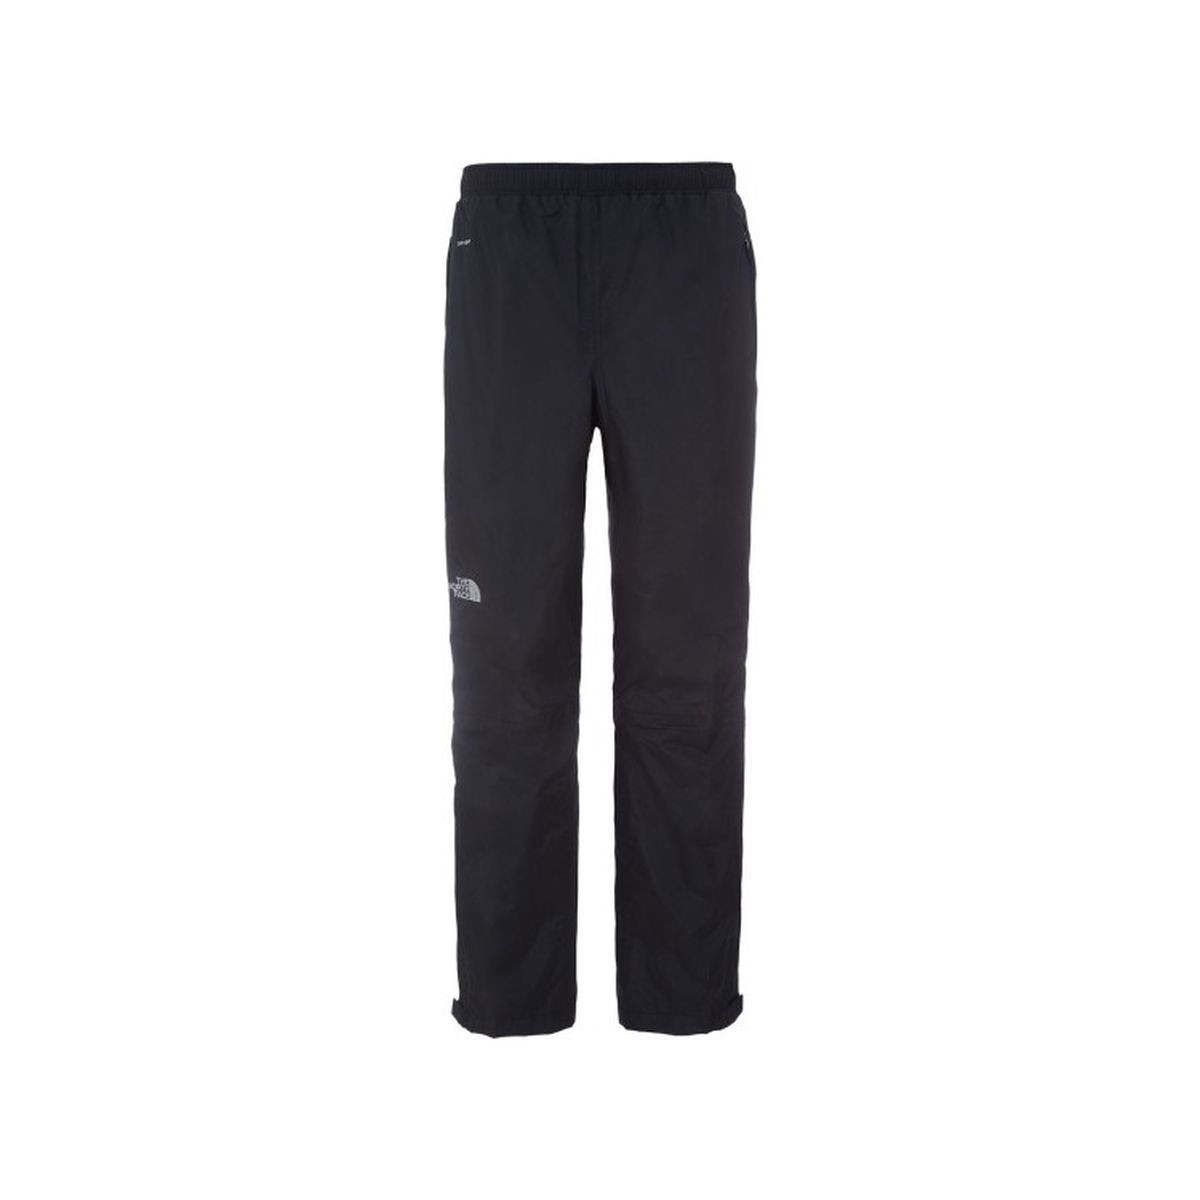 THE NORTH FACE - M RESOLVE PANT TNF - MEN